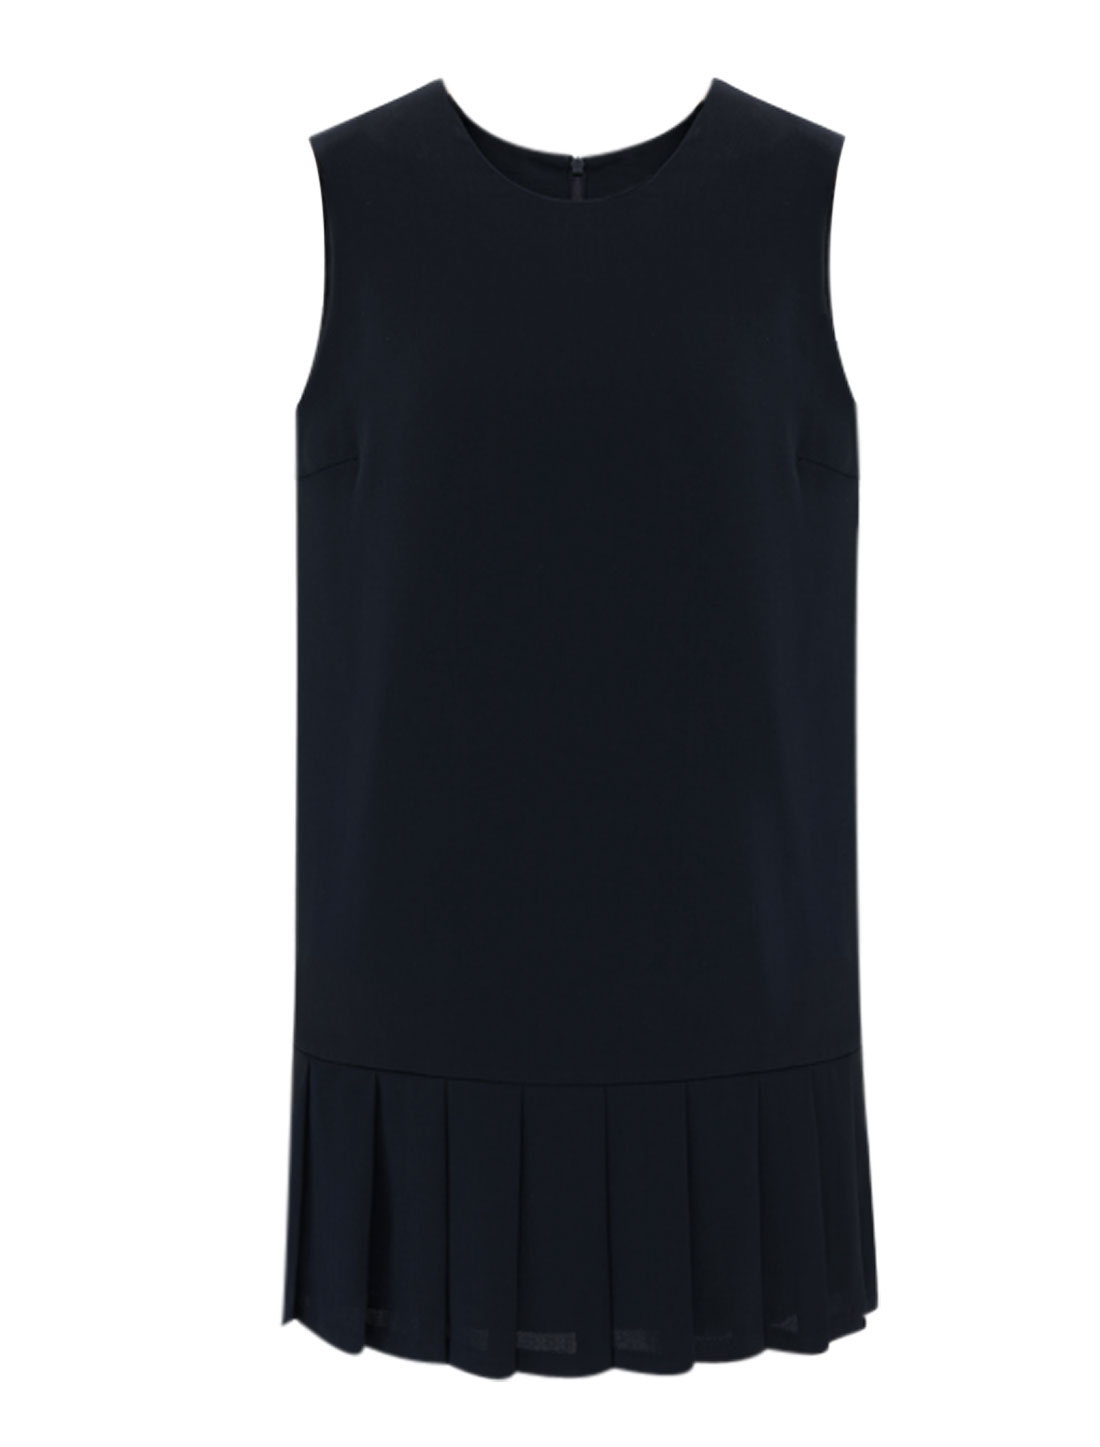 Lady Pleated Hem Hidden Back Zipper Full Lined Chiffon Tank Dress Navy Blue S